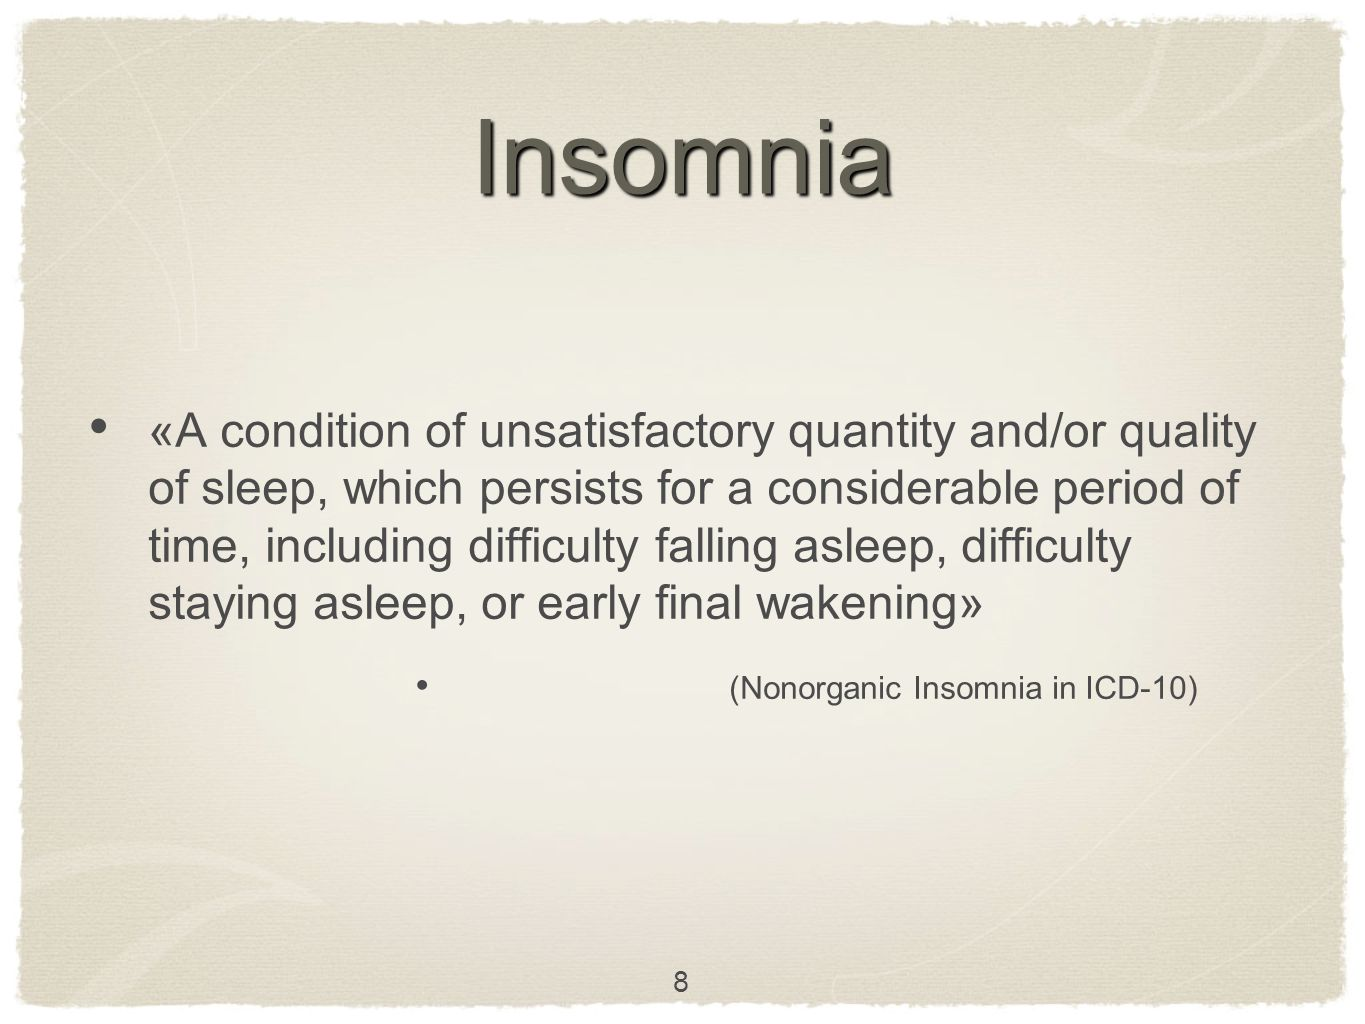 Insomnia «A condition of unsatisfactory quantity and/or quality of sleep, which persists for a considerable period of time, including difficulty falling asleep, difficulty staying asleep, or early final wakening» (Nonorganic Insomnia in ICD-10) 8